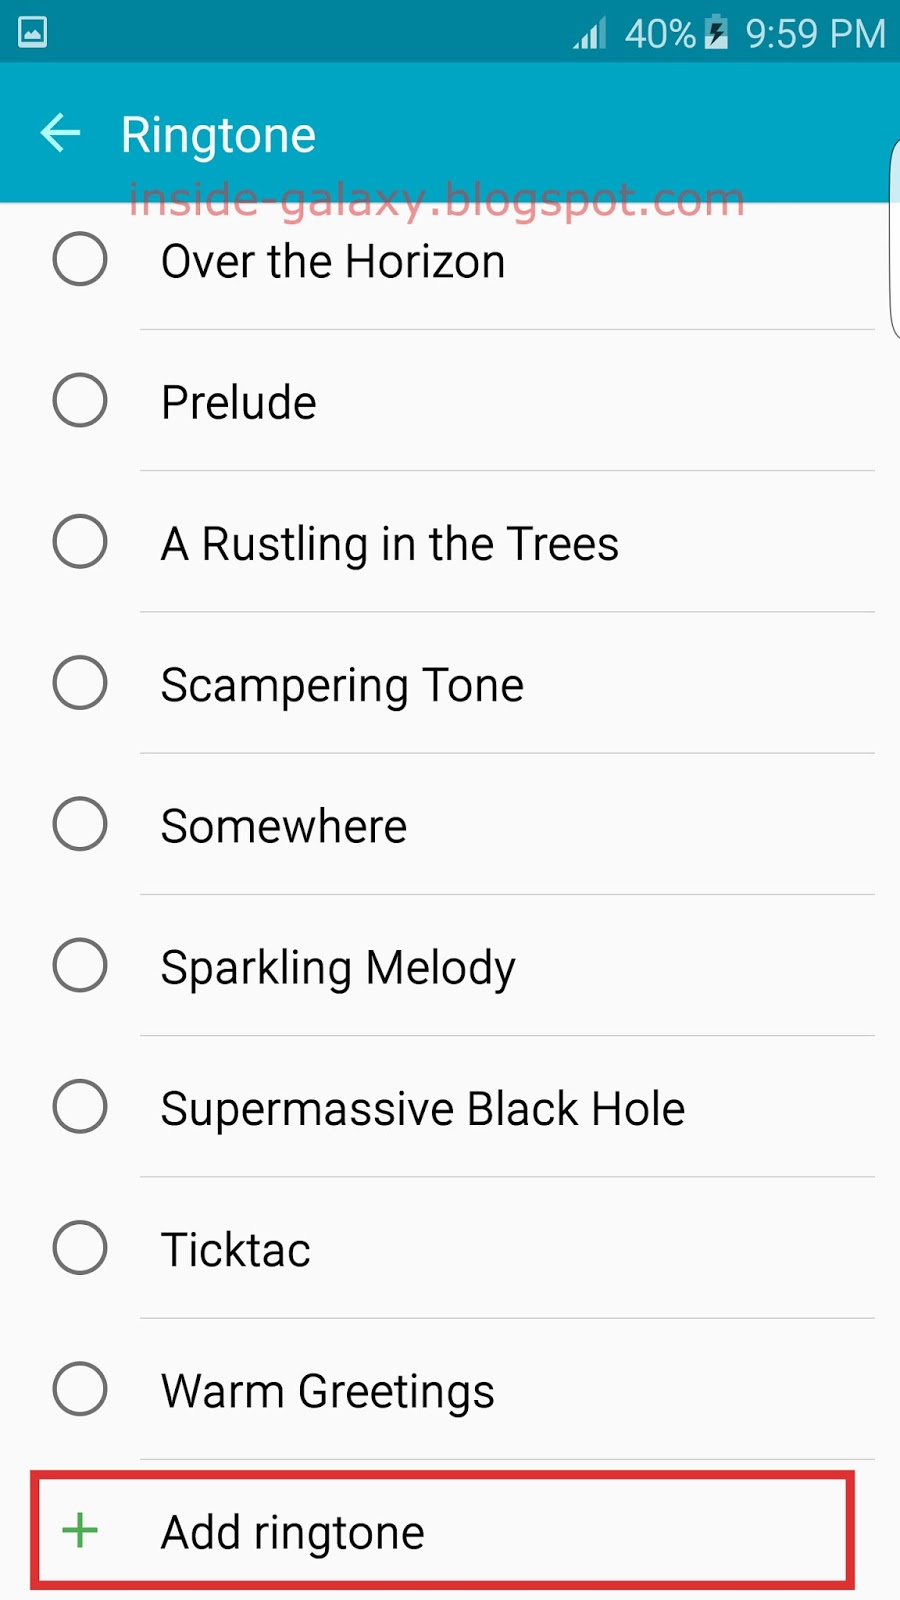 1. Why you may want to customize Samsung Galaxy S6 ringtone?